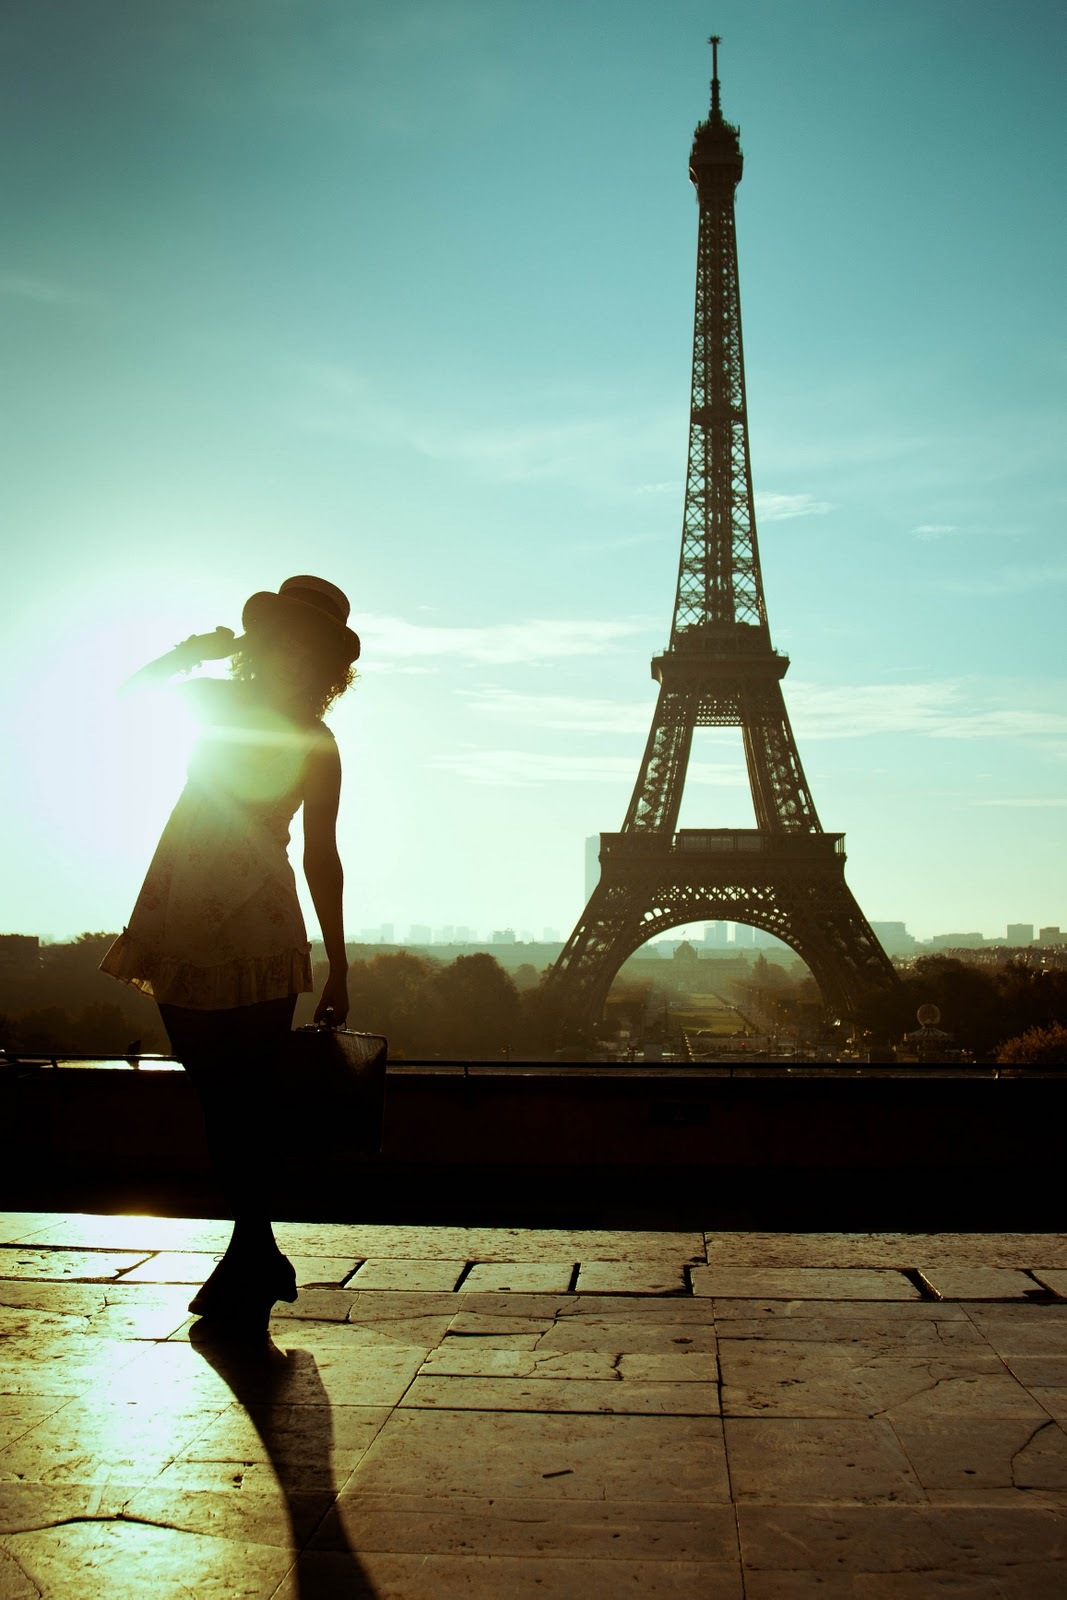 beautiful, curls, girl, journey, paris